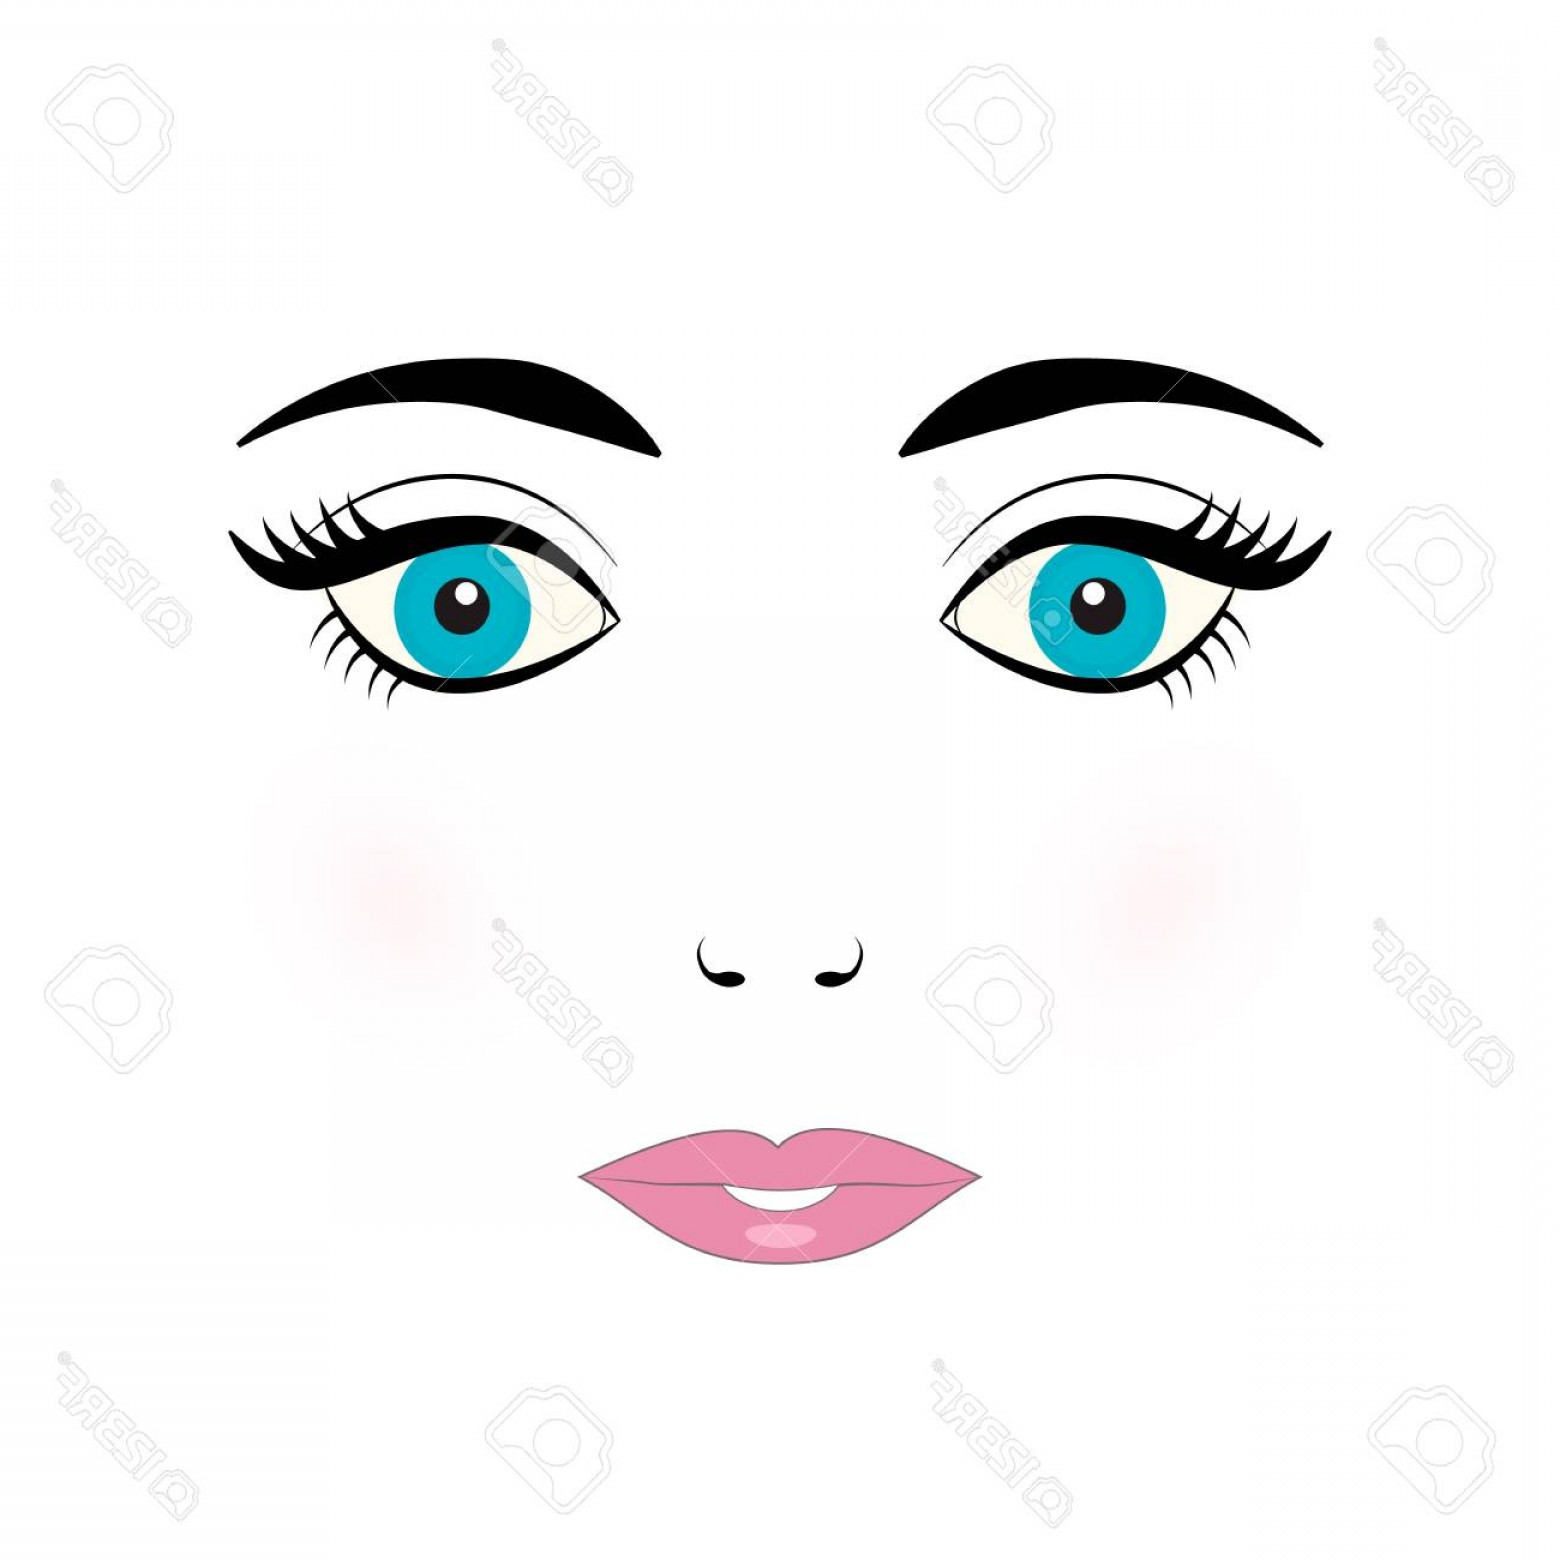 Doll Lips Vector: Photostock Vector Cute Young Woman Face Vector Illustration Doll Face With Blue Eyes Eyelashes Eyebrows And Pink Lips